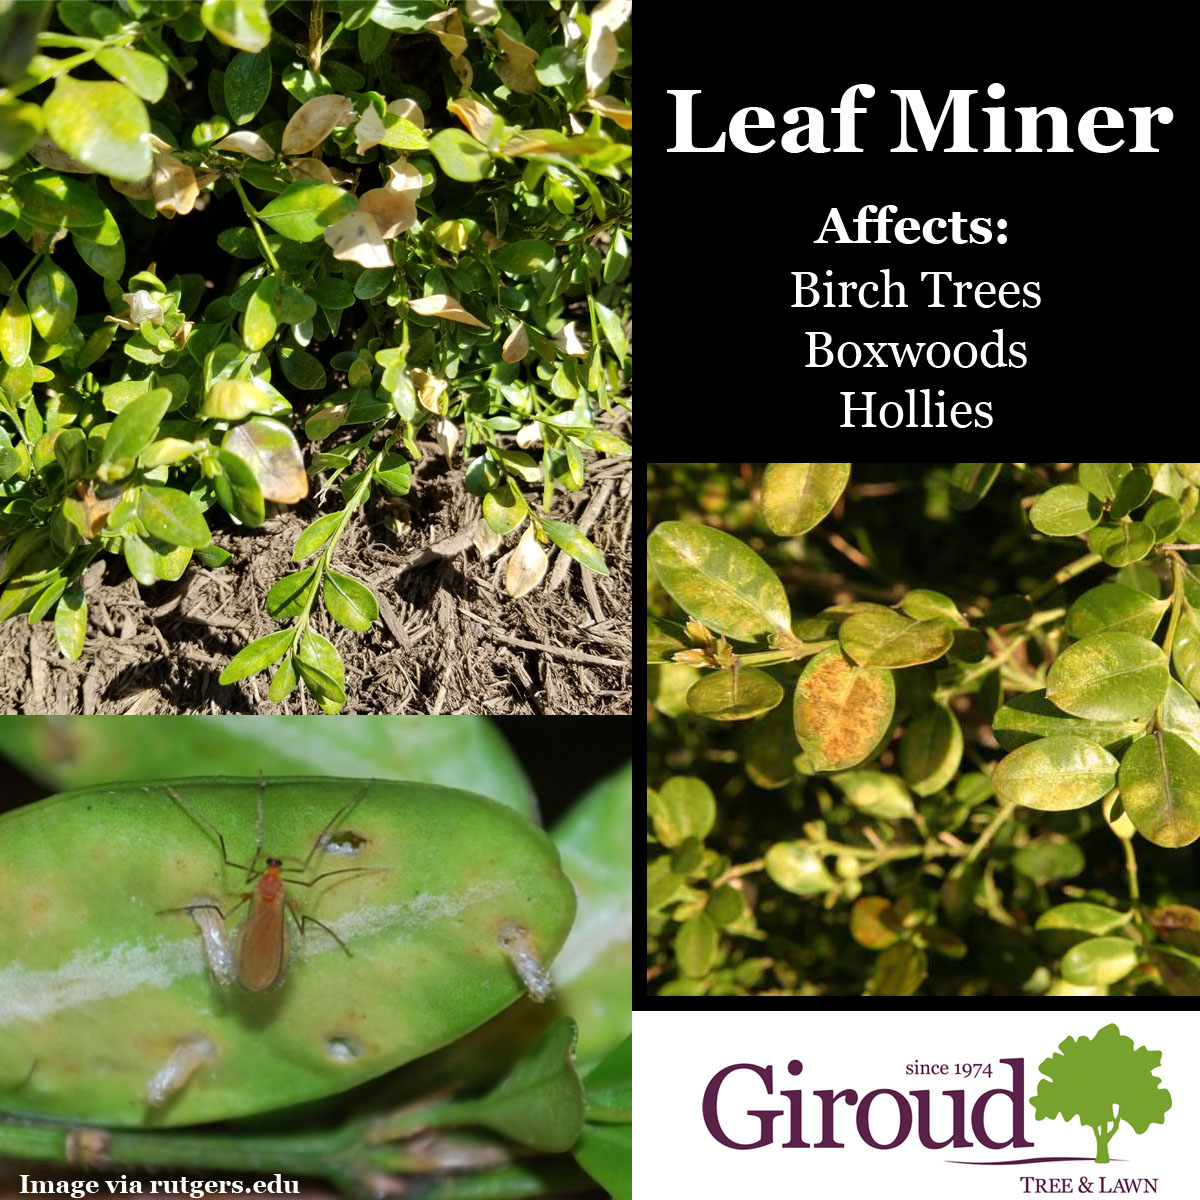 2018-Top-5-Damaging-Insects-You-Need-to-Watch-for-on-trees-and-shrubs-Leafminer-Facts